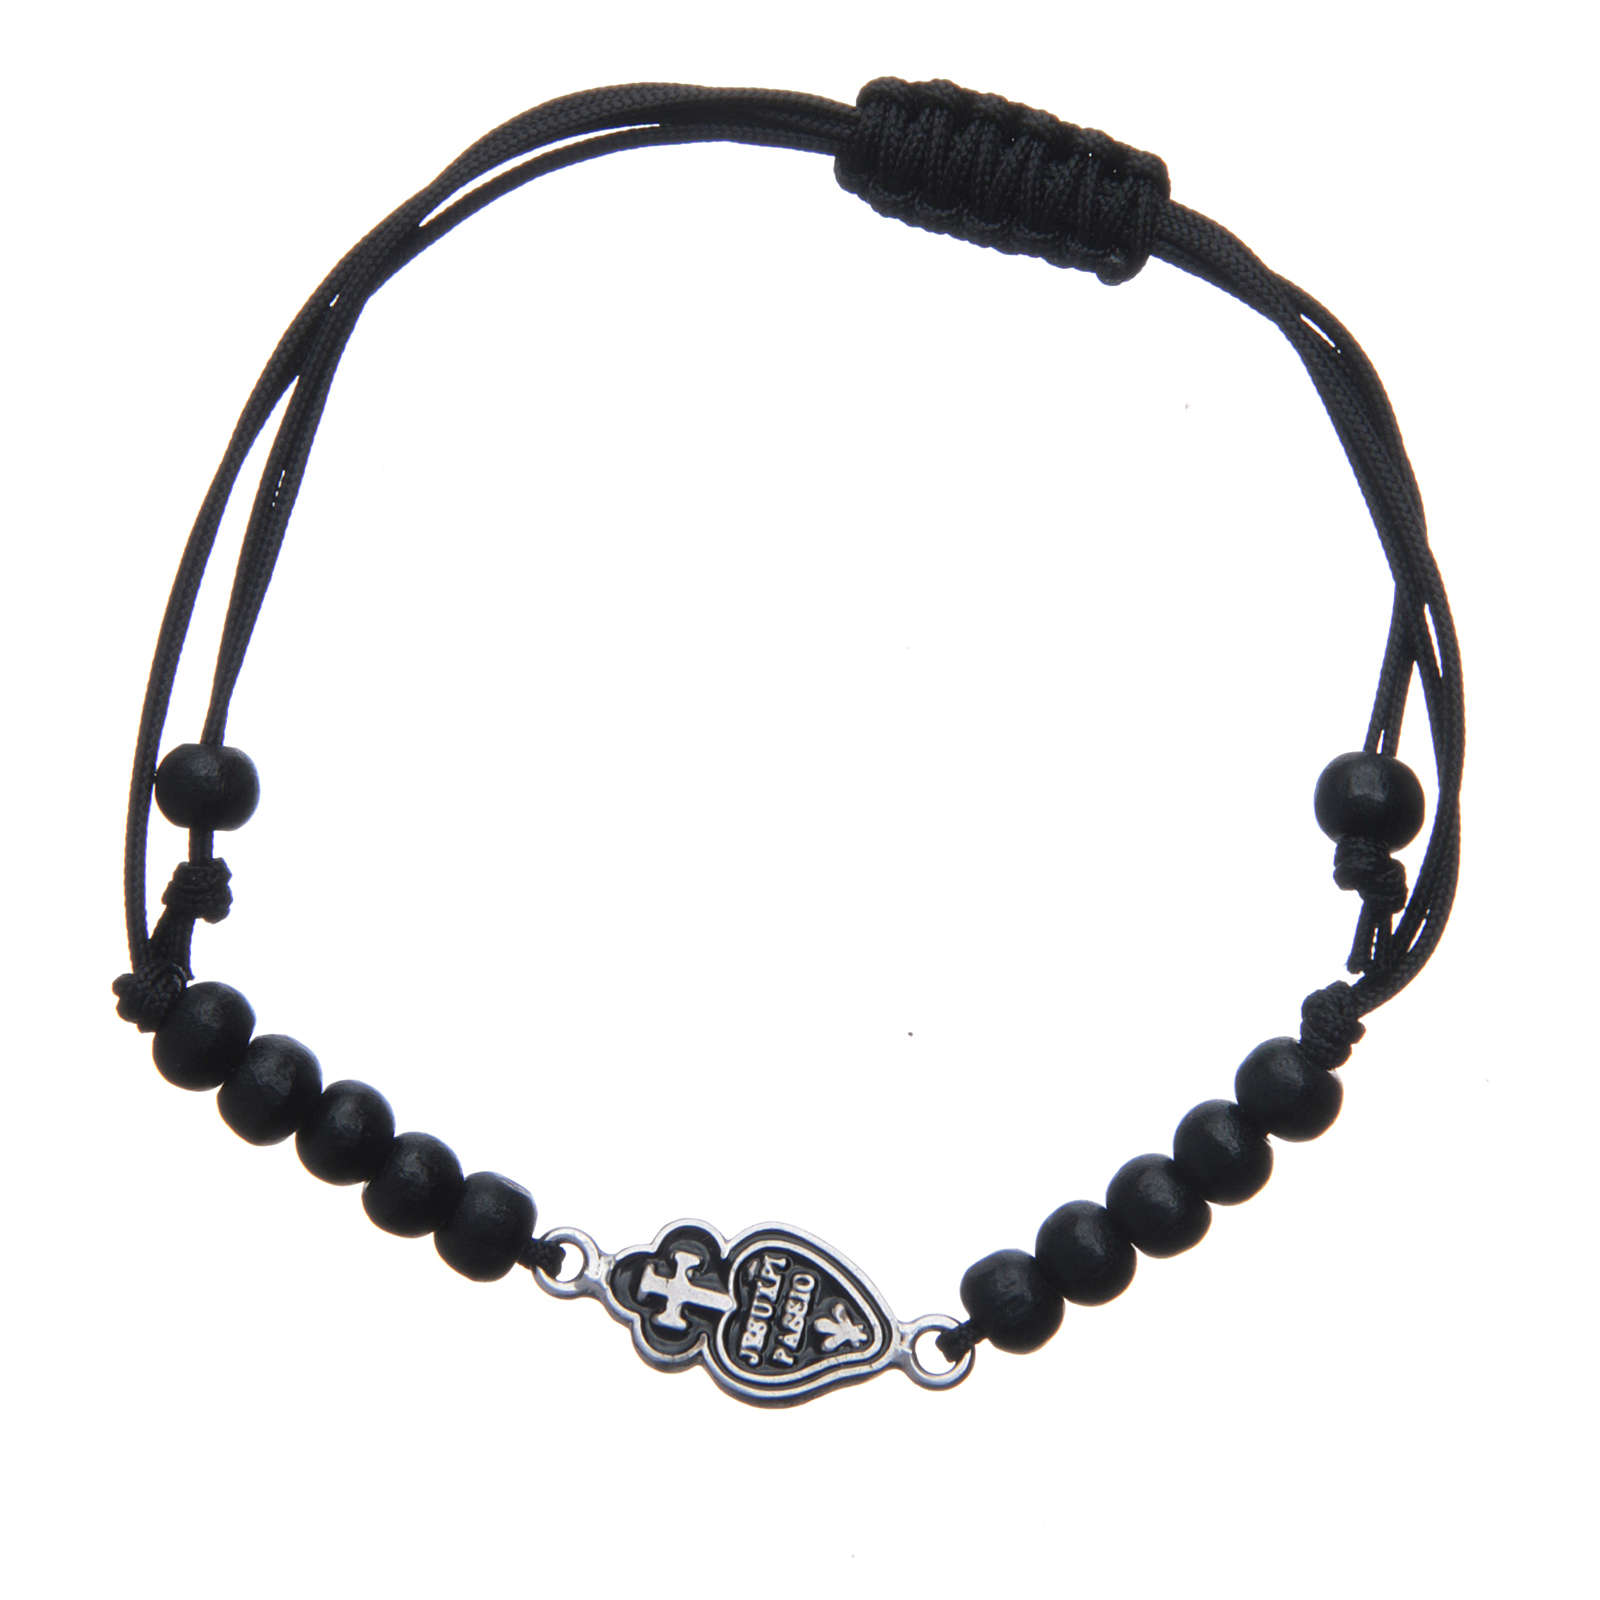 Bracelet with Passionists symbol in 925 silver 4